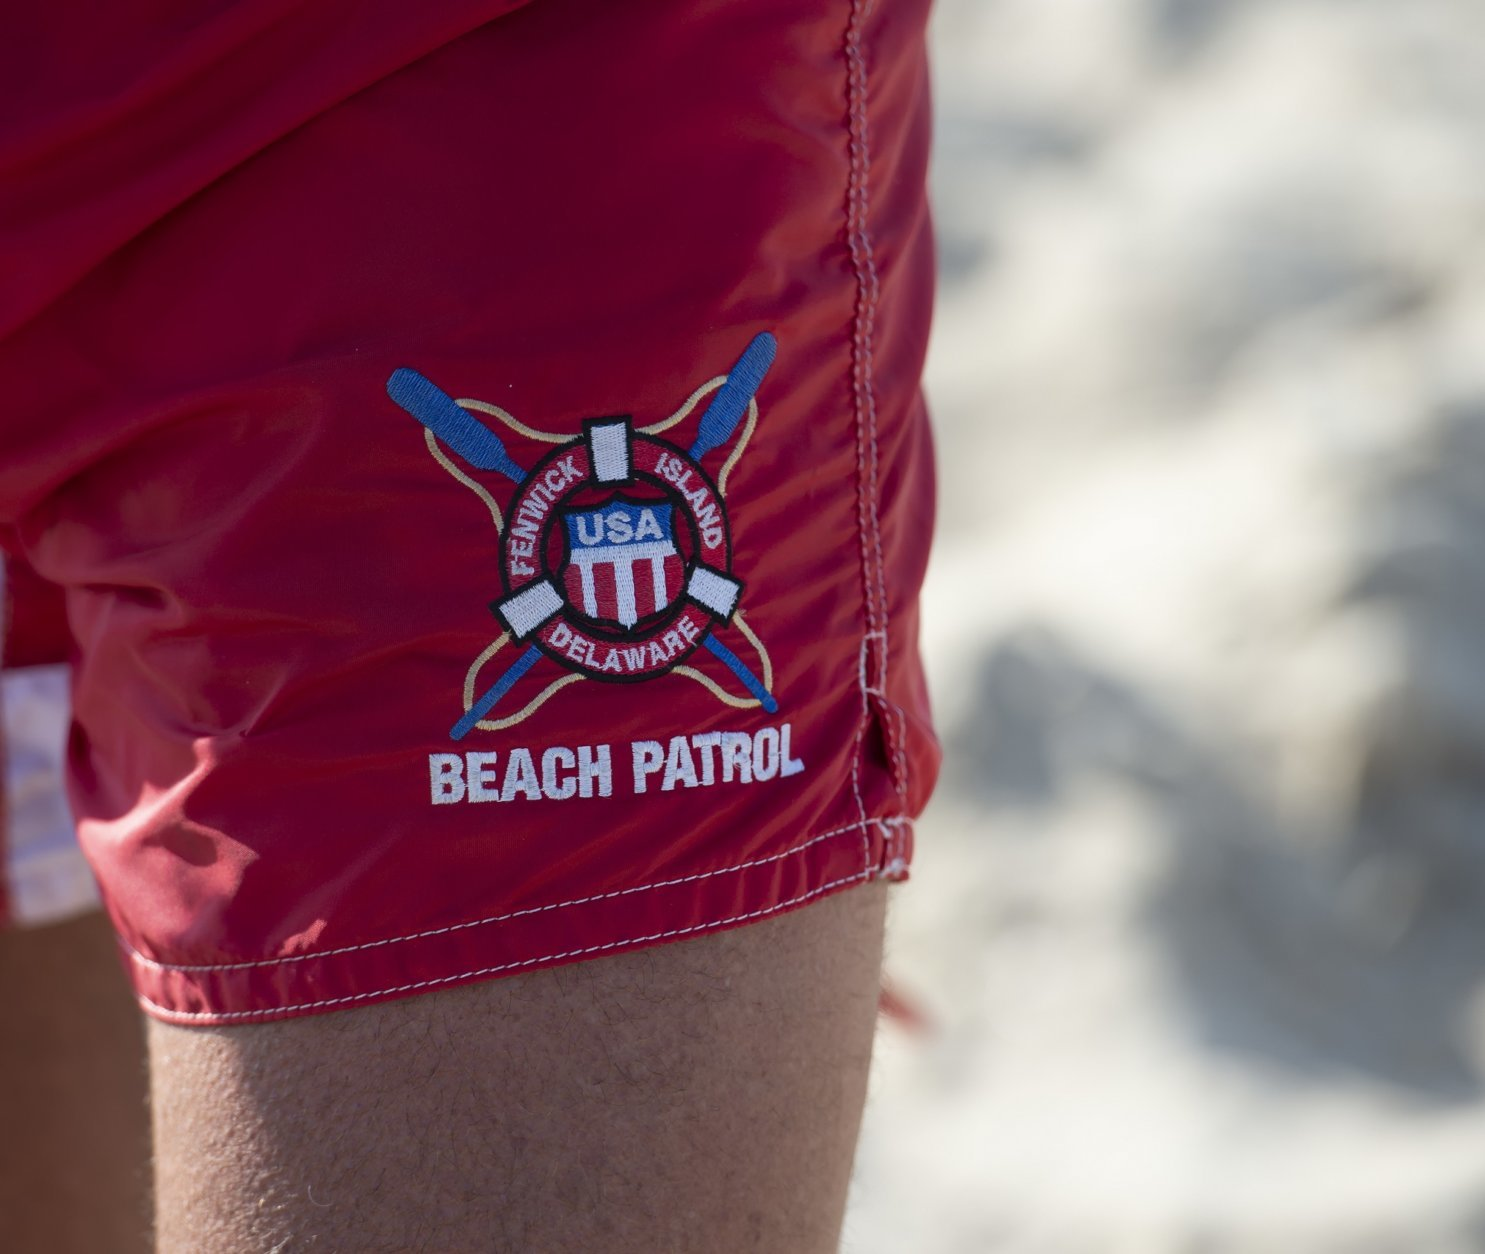 In this Aug. 30, 2018 photo, the beach shorts of Fenwick Island Beach Patrol Capt. Tim Ferry are shown in Fenwick Island, Del. The buff high school guidance counselor has been manning the shoreline since 1976, saving lives in between winning medals at international lifeguard competitions and literally writing the handbook on beach safety. (Jason Minto/The News Journal via AP)